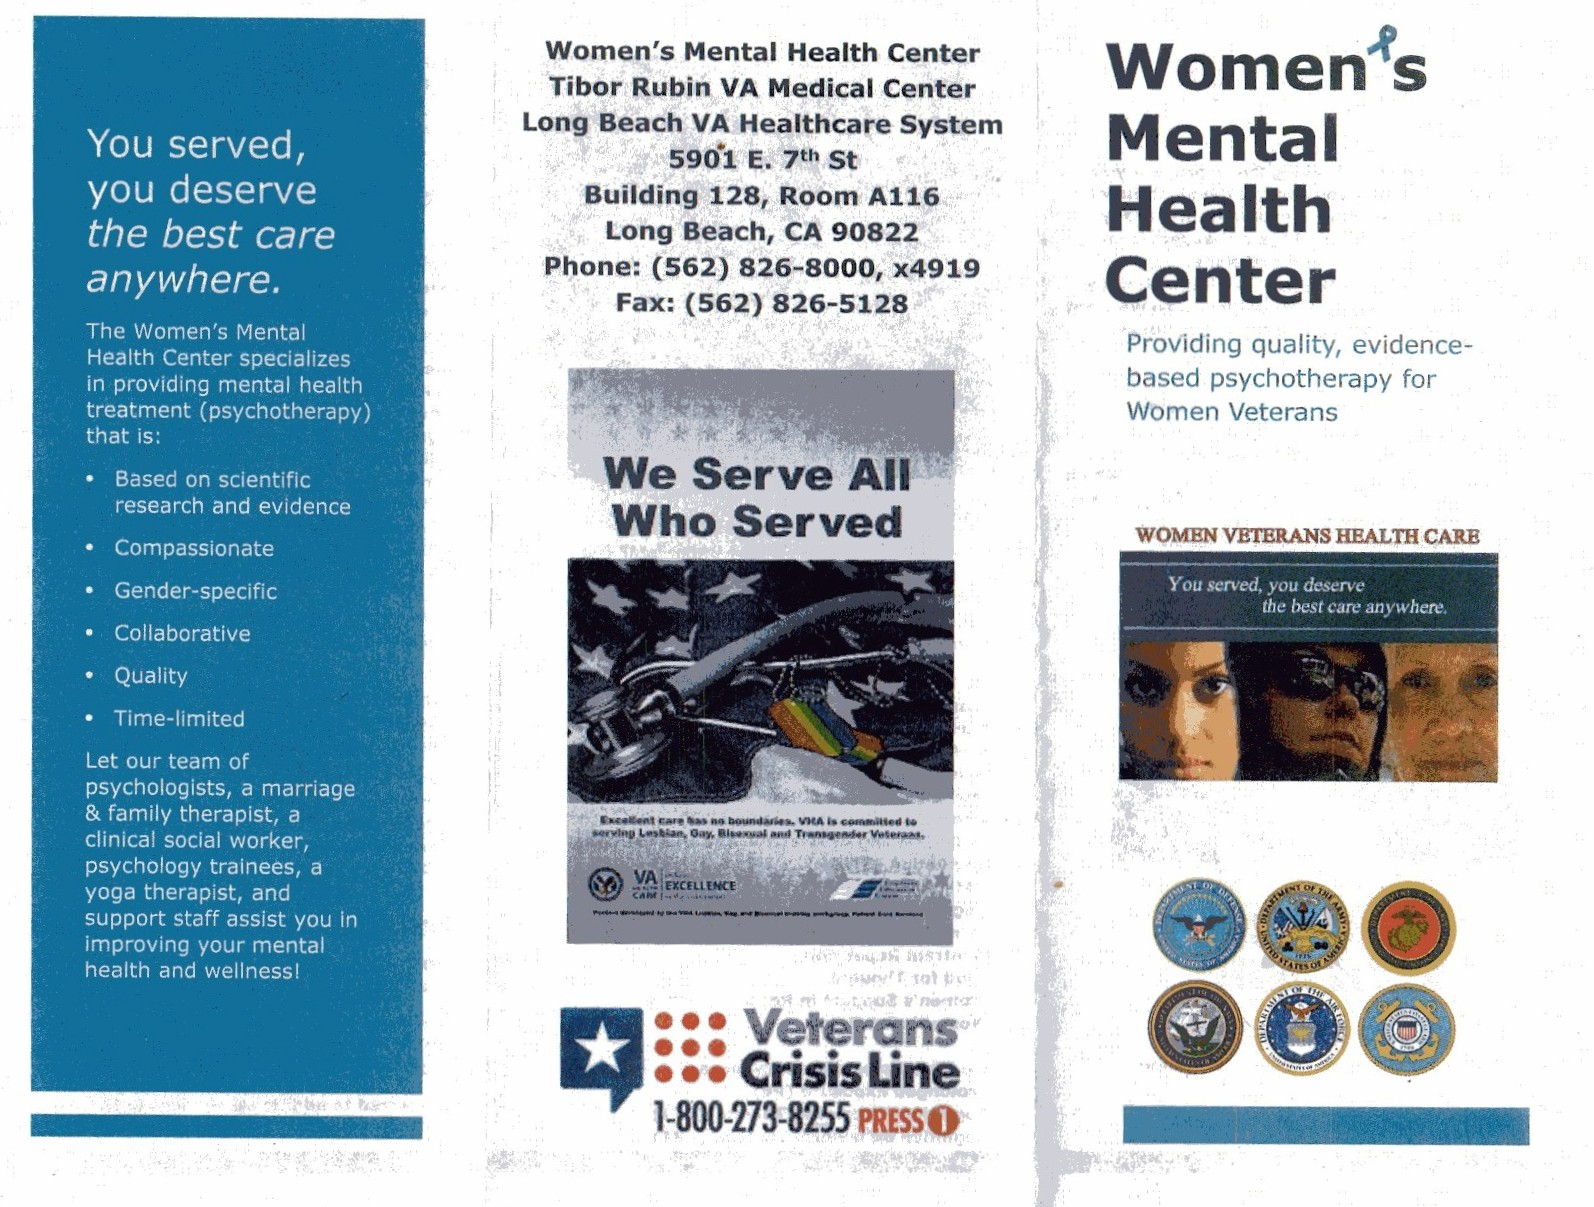 Brochure-Women_Vet_Mental_Hlth001.jpg